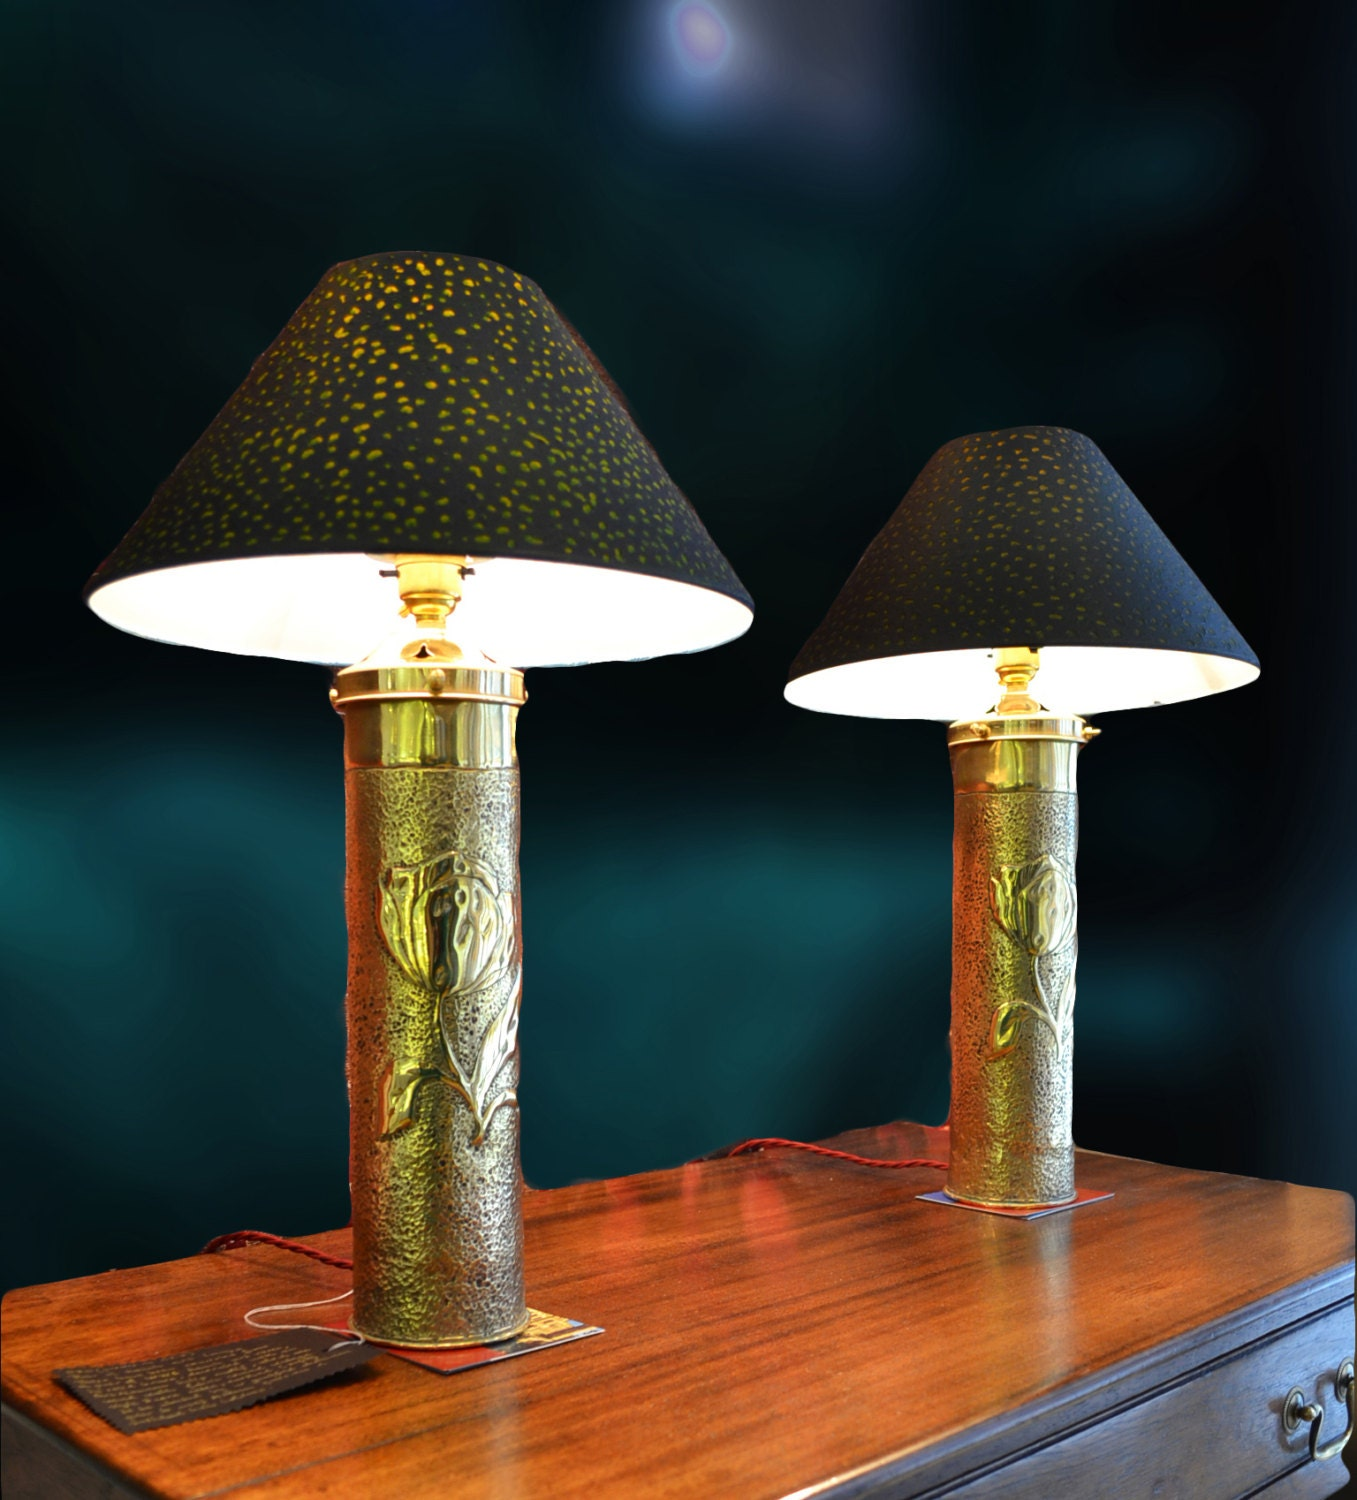 The Lacoona Shells  Pair of converted WWI Trench Art vases with Art Nouveau details with textured hand painted lamp shades